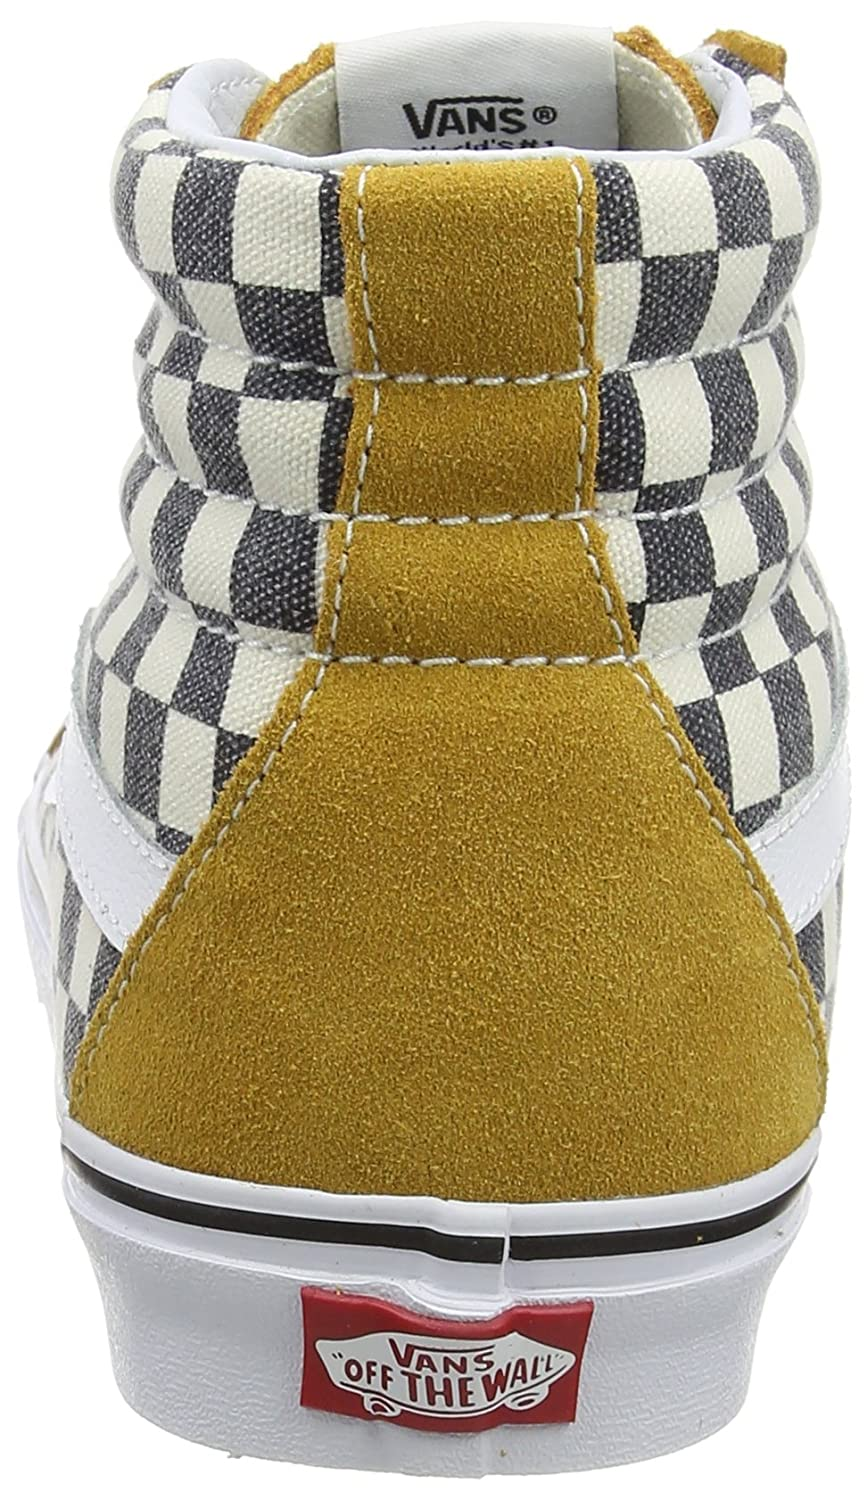 74a6daa3b9c392 Vans SK8-Hi Reissue Checkerboard Spruce Yellow Navy Skate Shoes  Amazon.ca   Shoes   Handbags